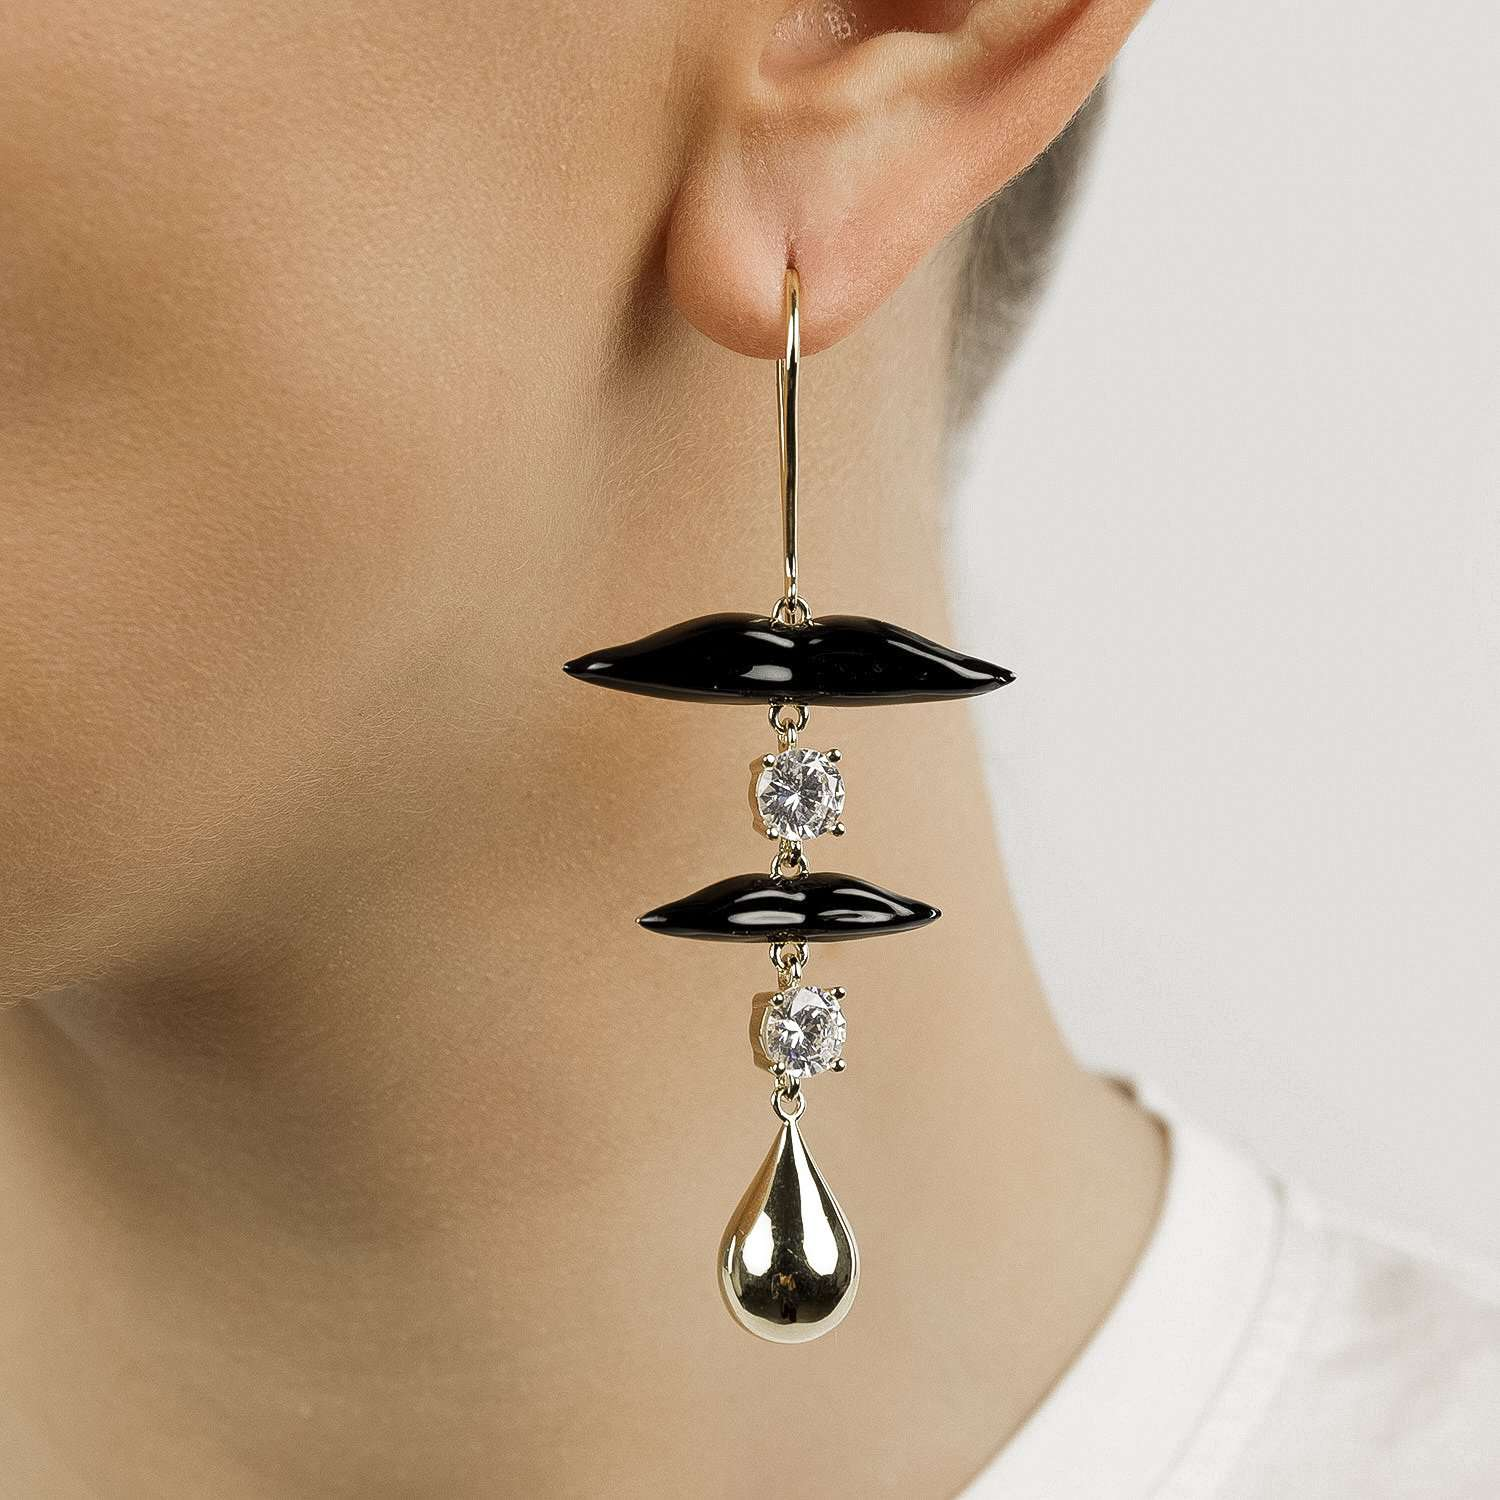 Black lips Earrings with crystal